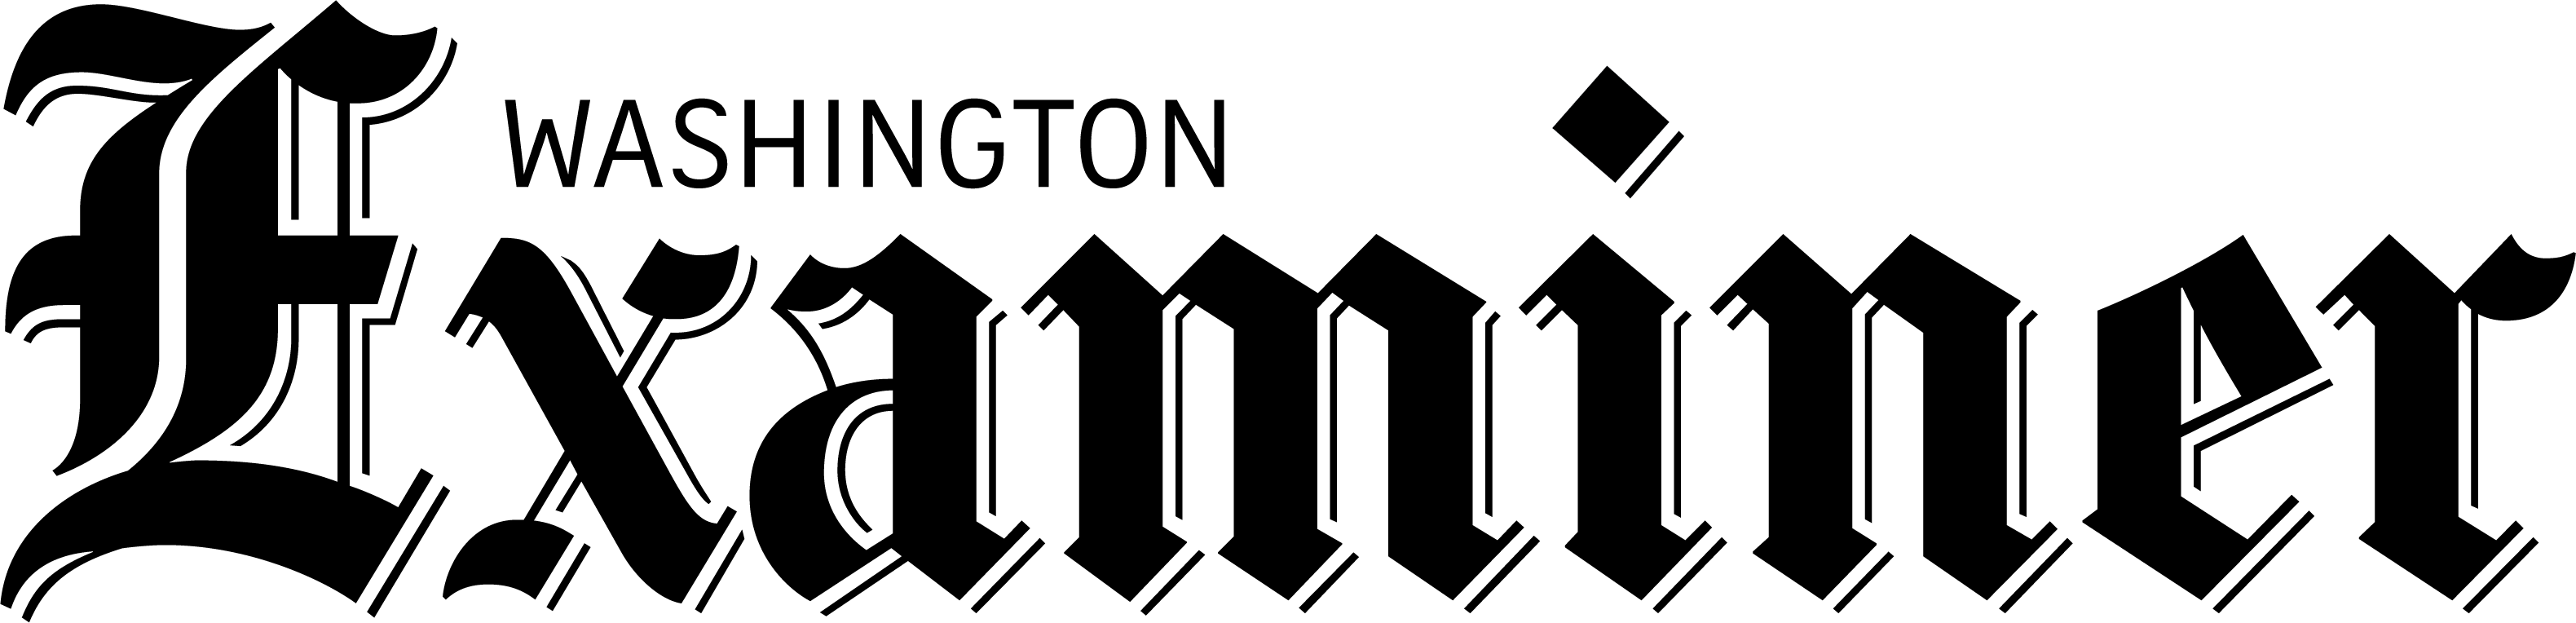 2017-Wash-Examiner-logo (1)